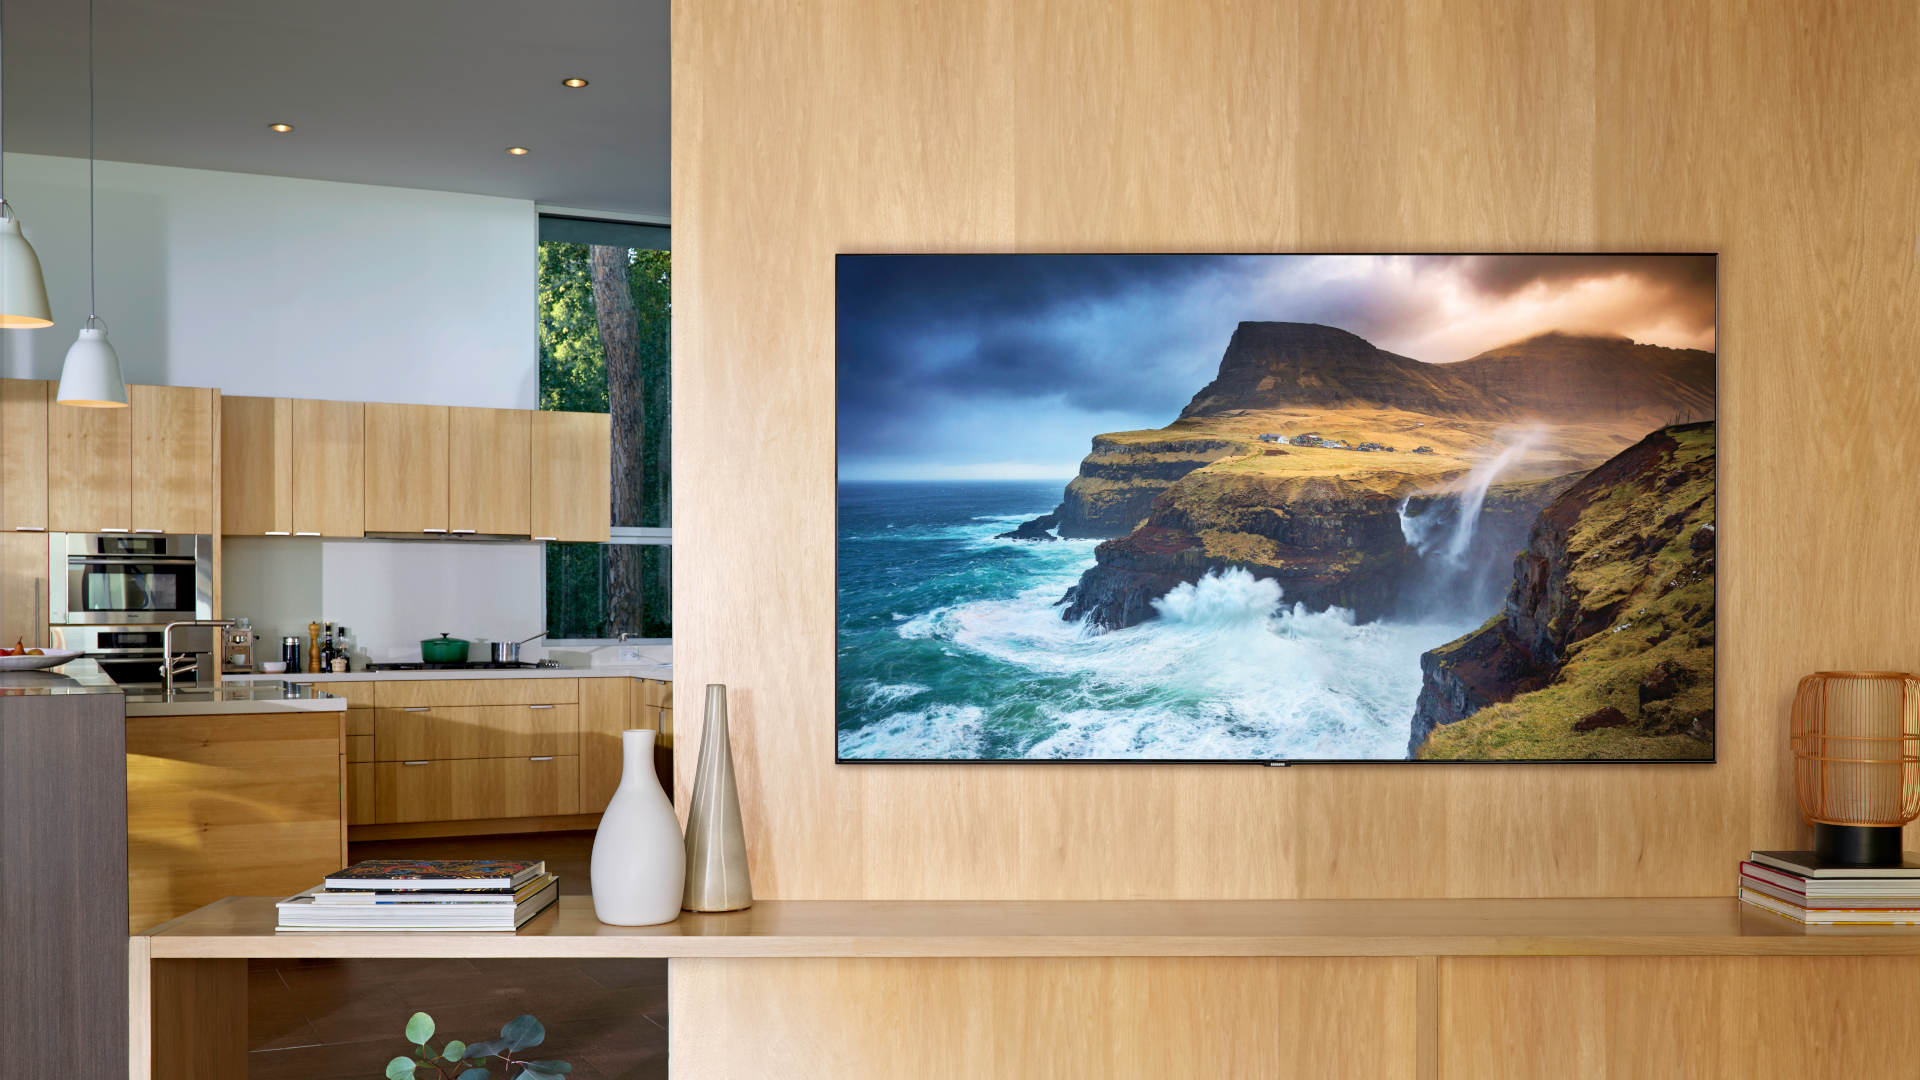 Samsung Q70 QLED TV review | TechRadar